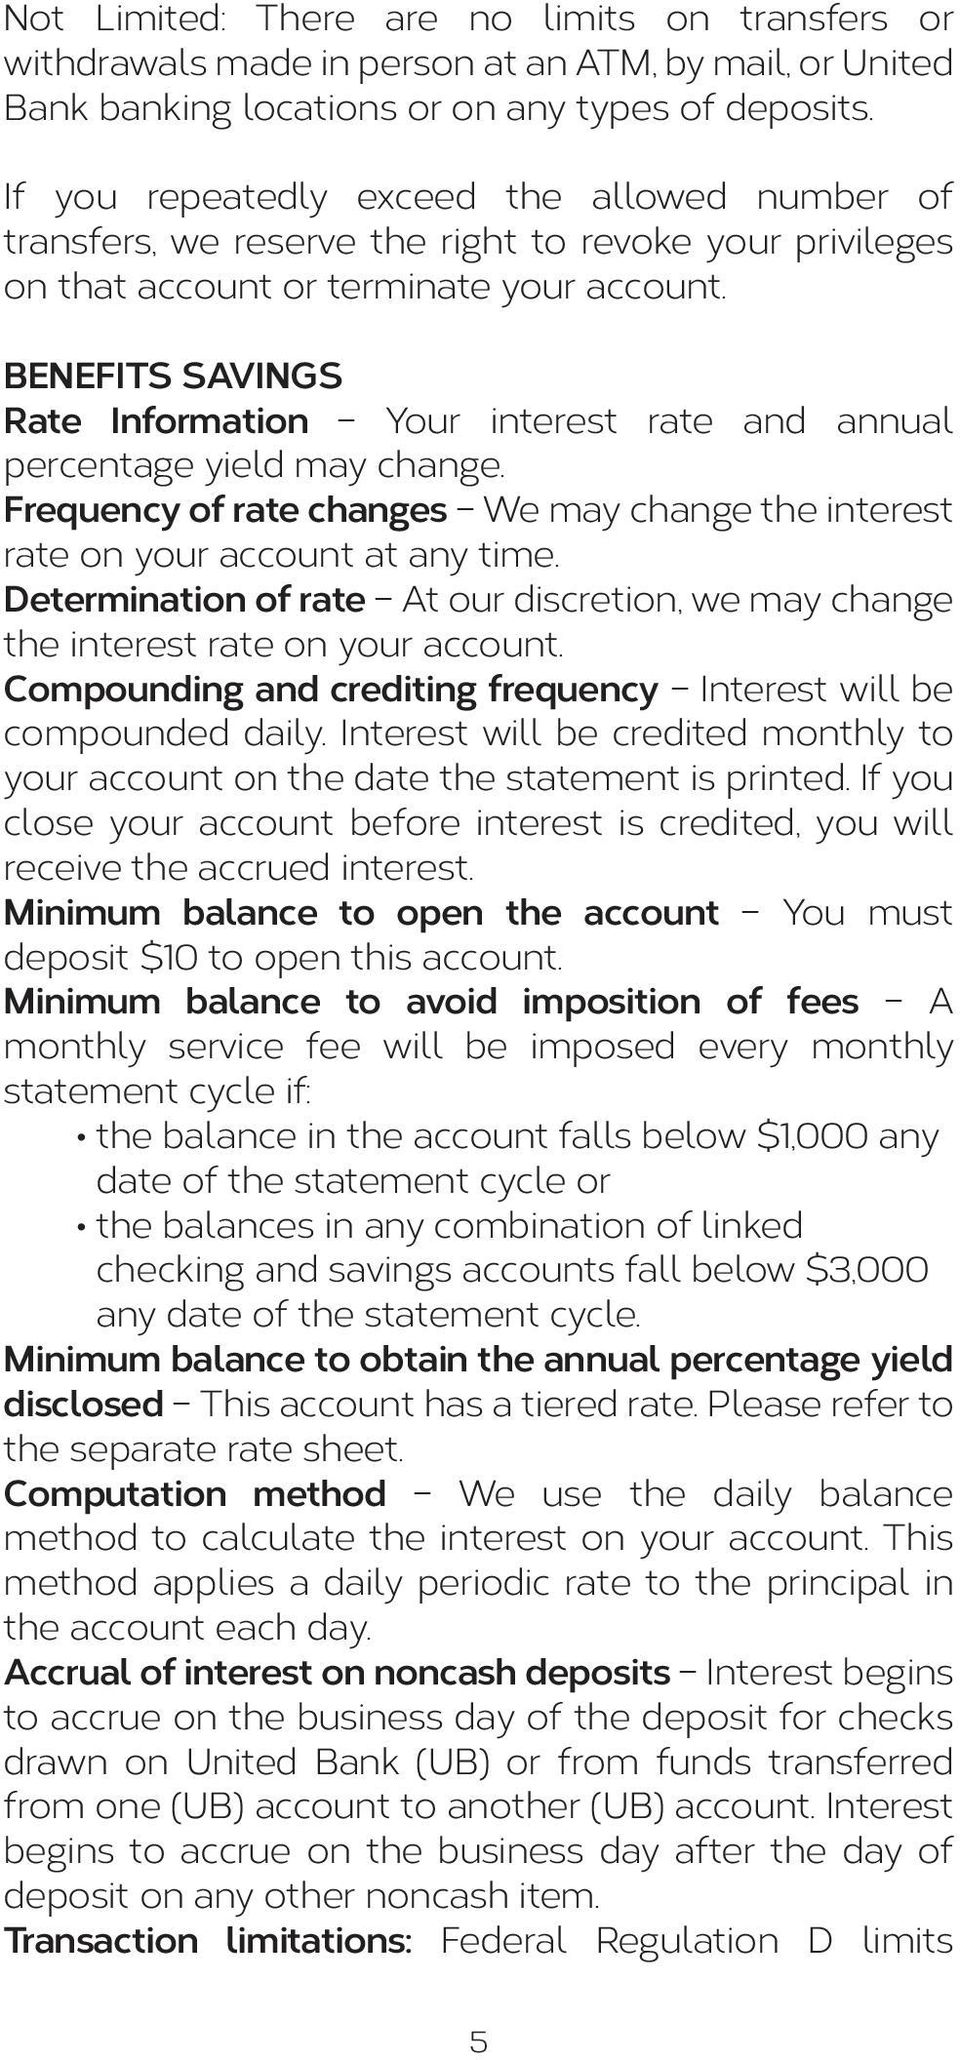 BENEFITS SAVINGS Rate Information Your interest rate and annual percentage yield may change. Frequency of rate changes We may change the interest rate on your account at any time.